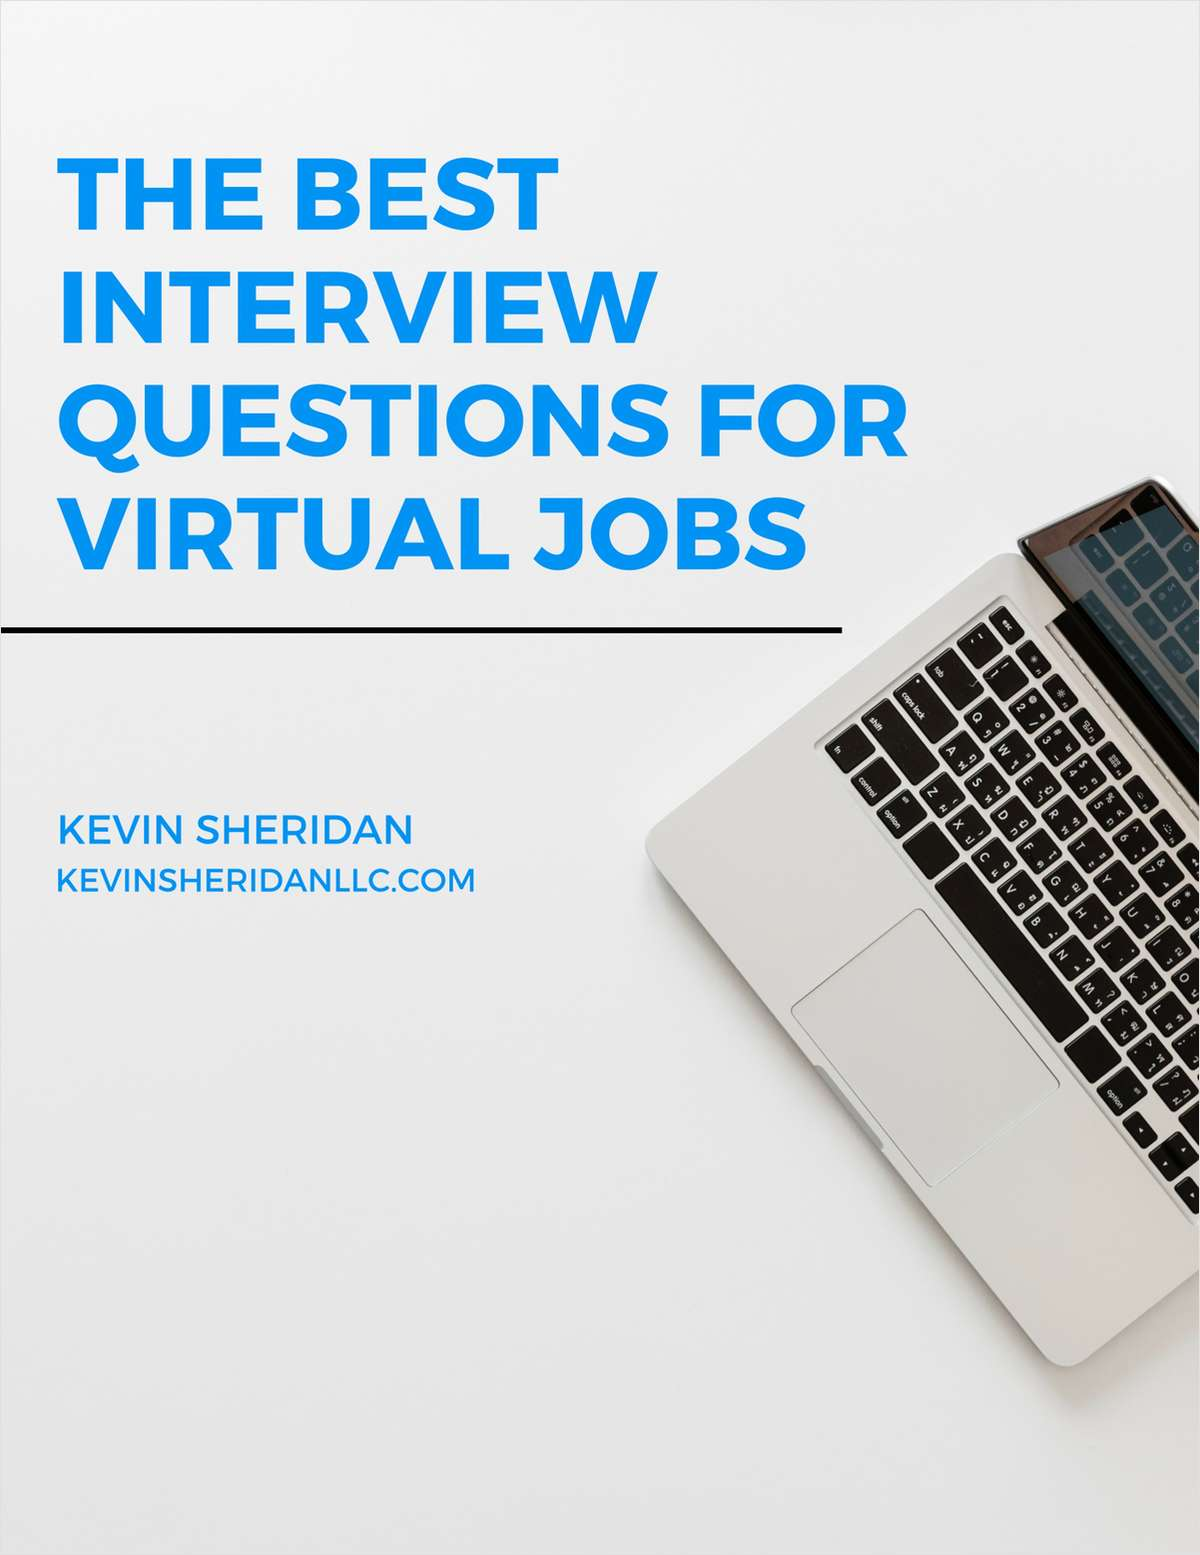 The Best Interview Questions for Virtual Jobs